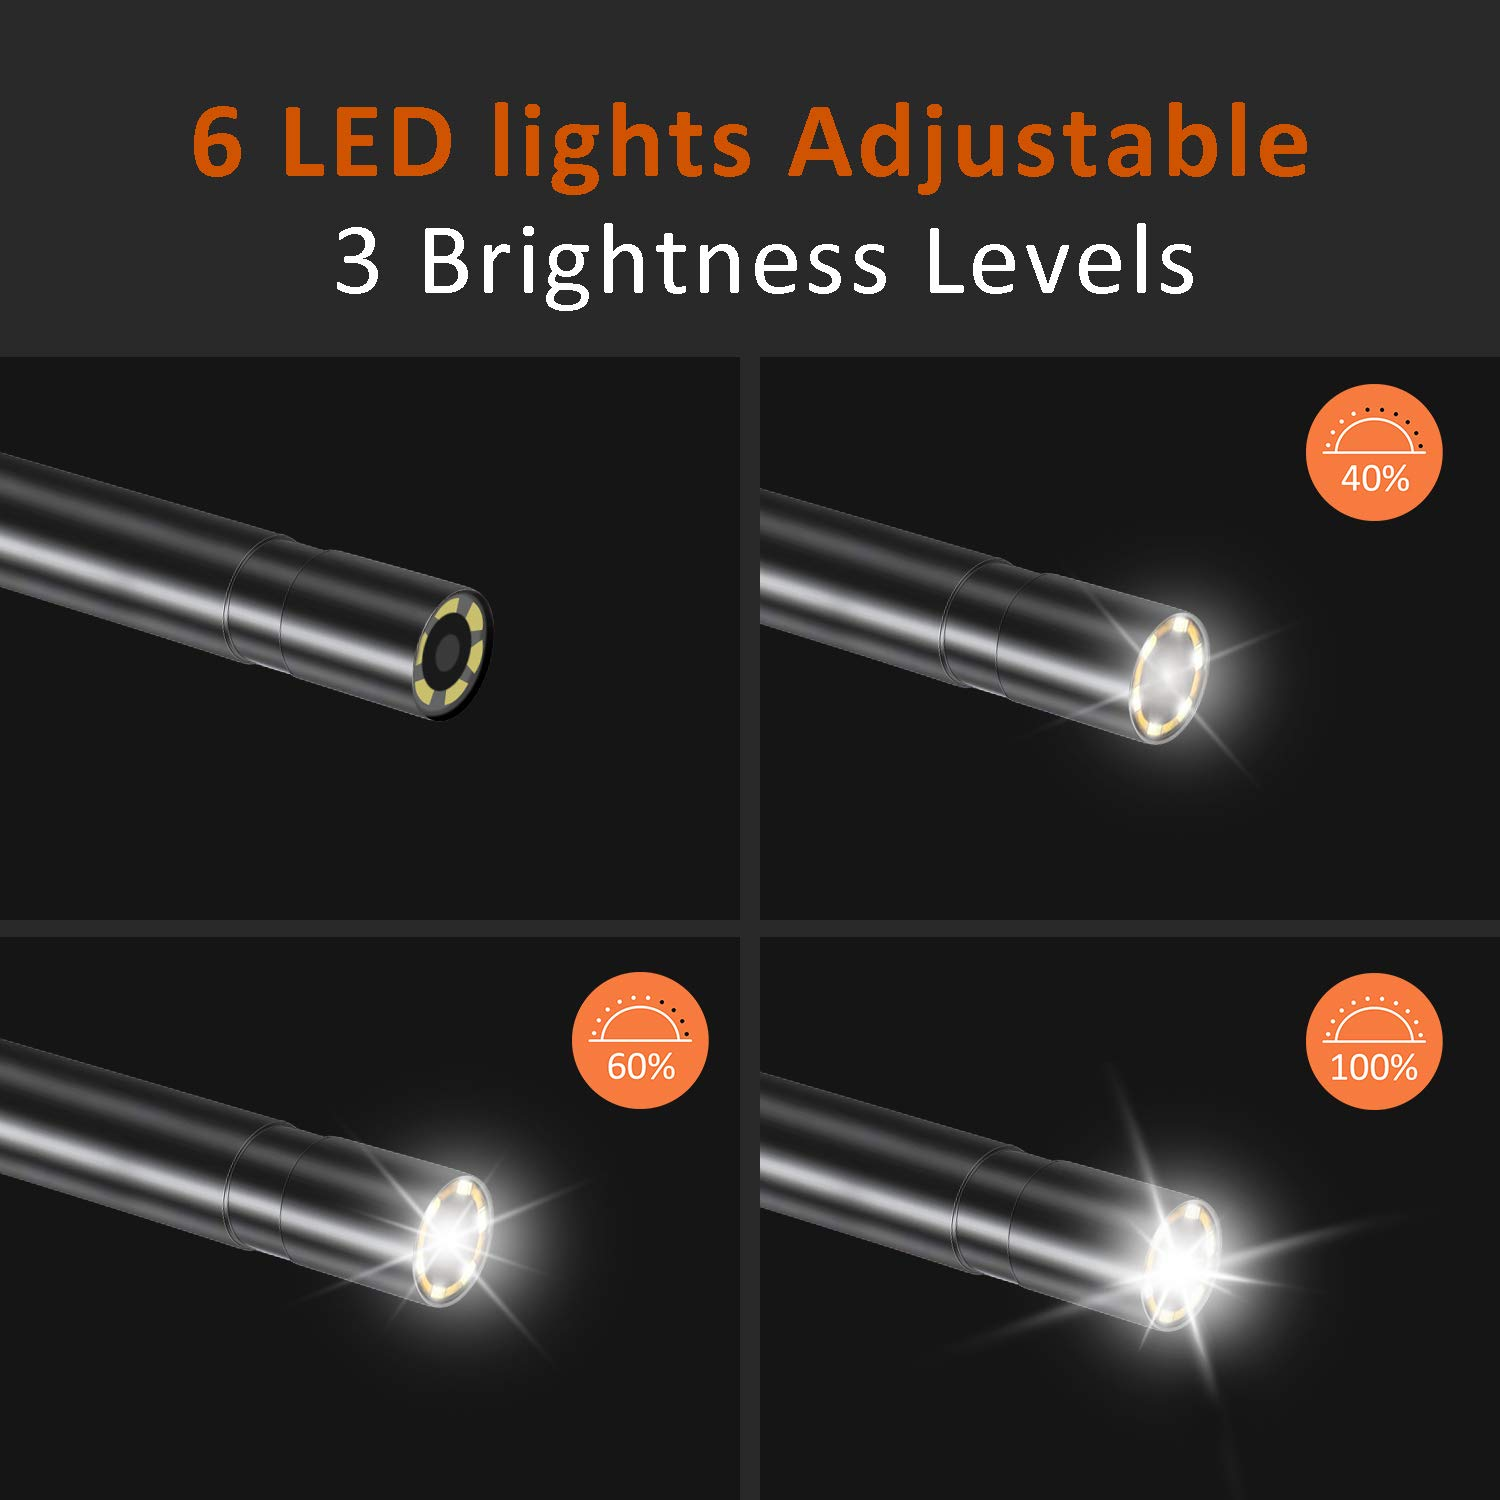 6 LED Lights,16.4 ft Removeable Snake Cable,32G TF Card Dual Lens Industrial Endoscope,1080P HD Handheld Borescope with IP67 Waterproof Camera,4.3 Inch LCD Screen